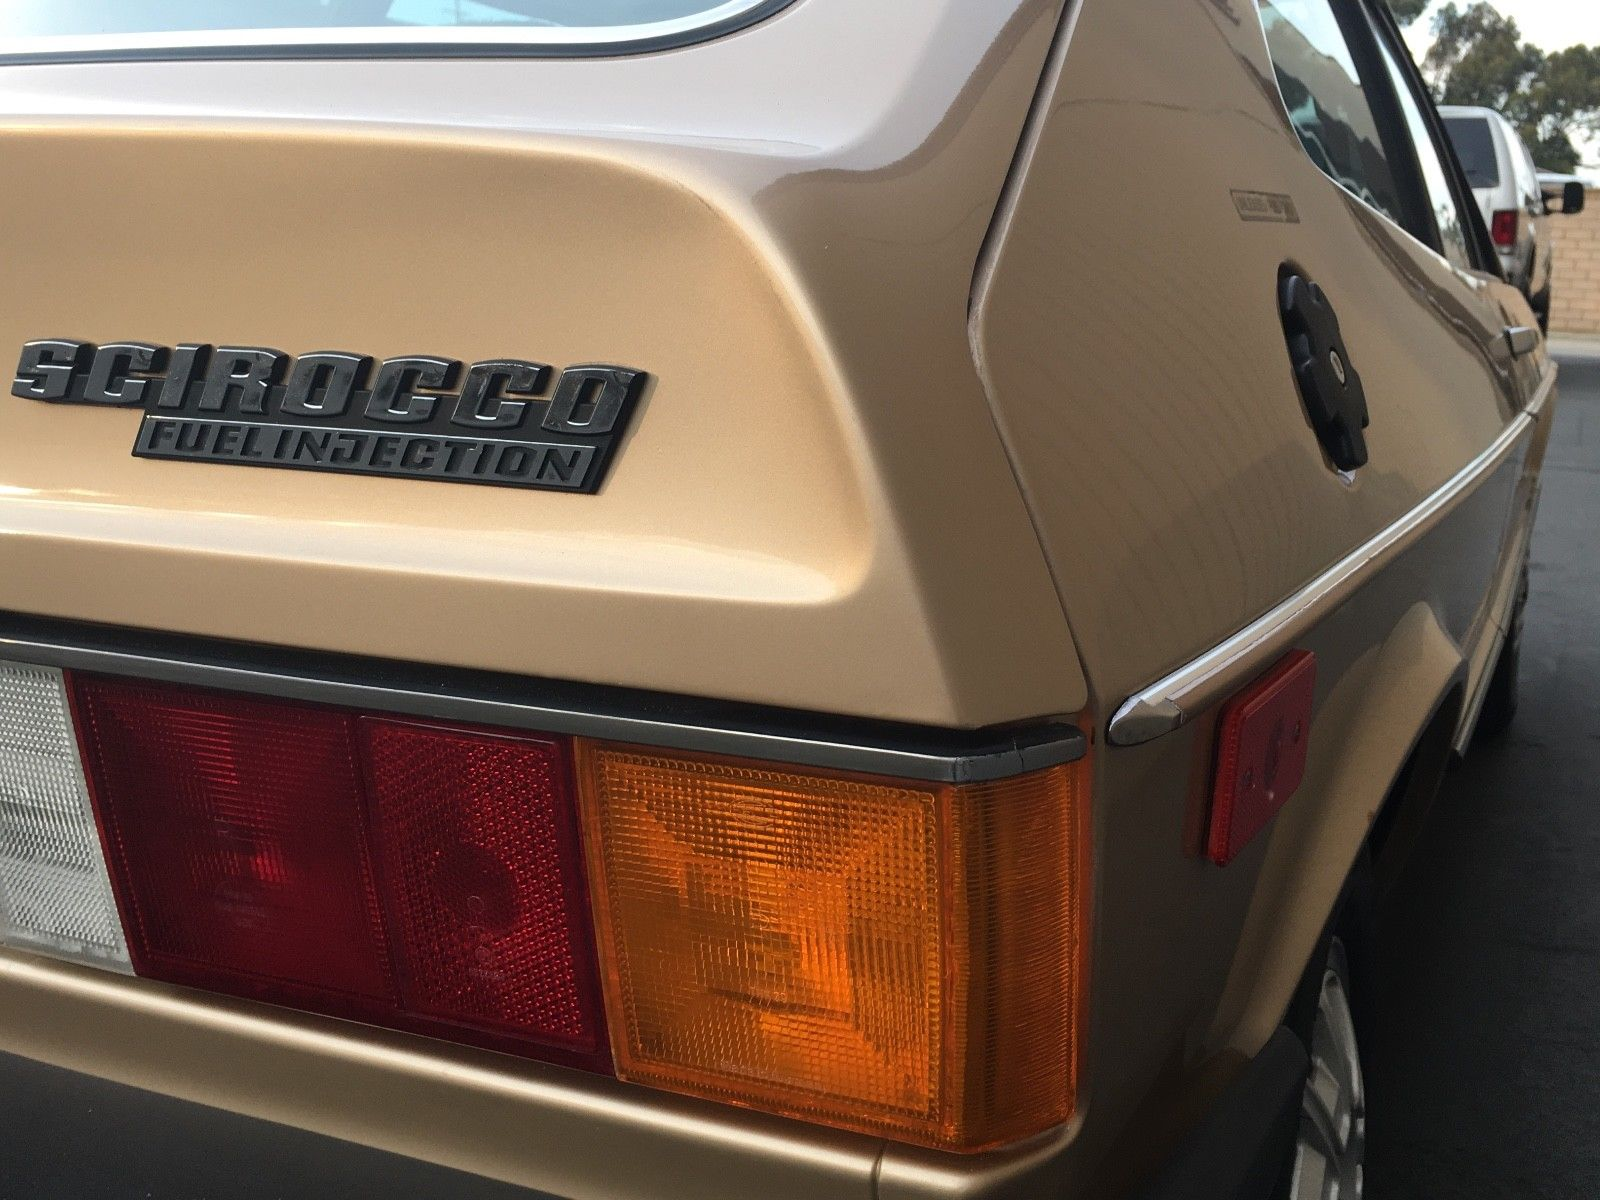 1978 Volkswagen Scirocco rear badge